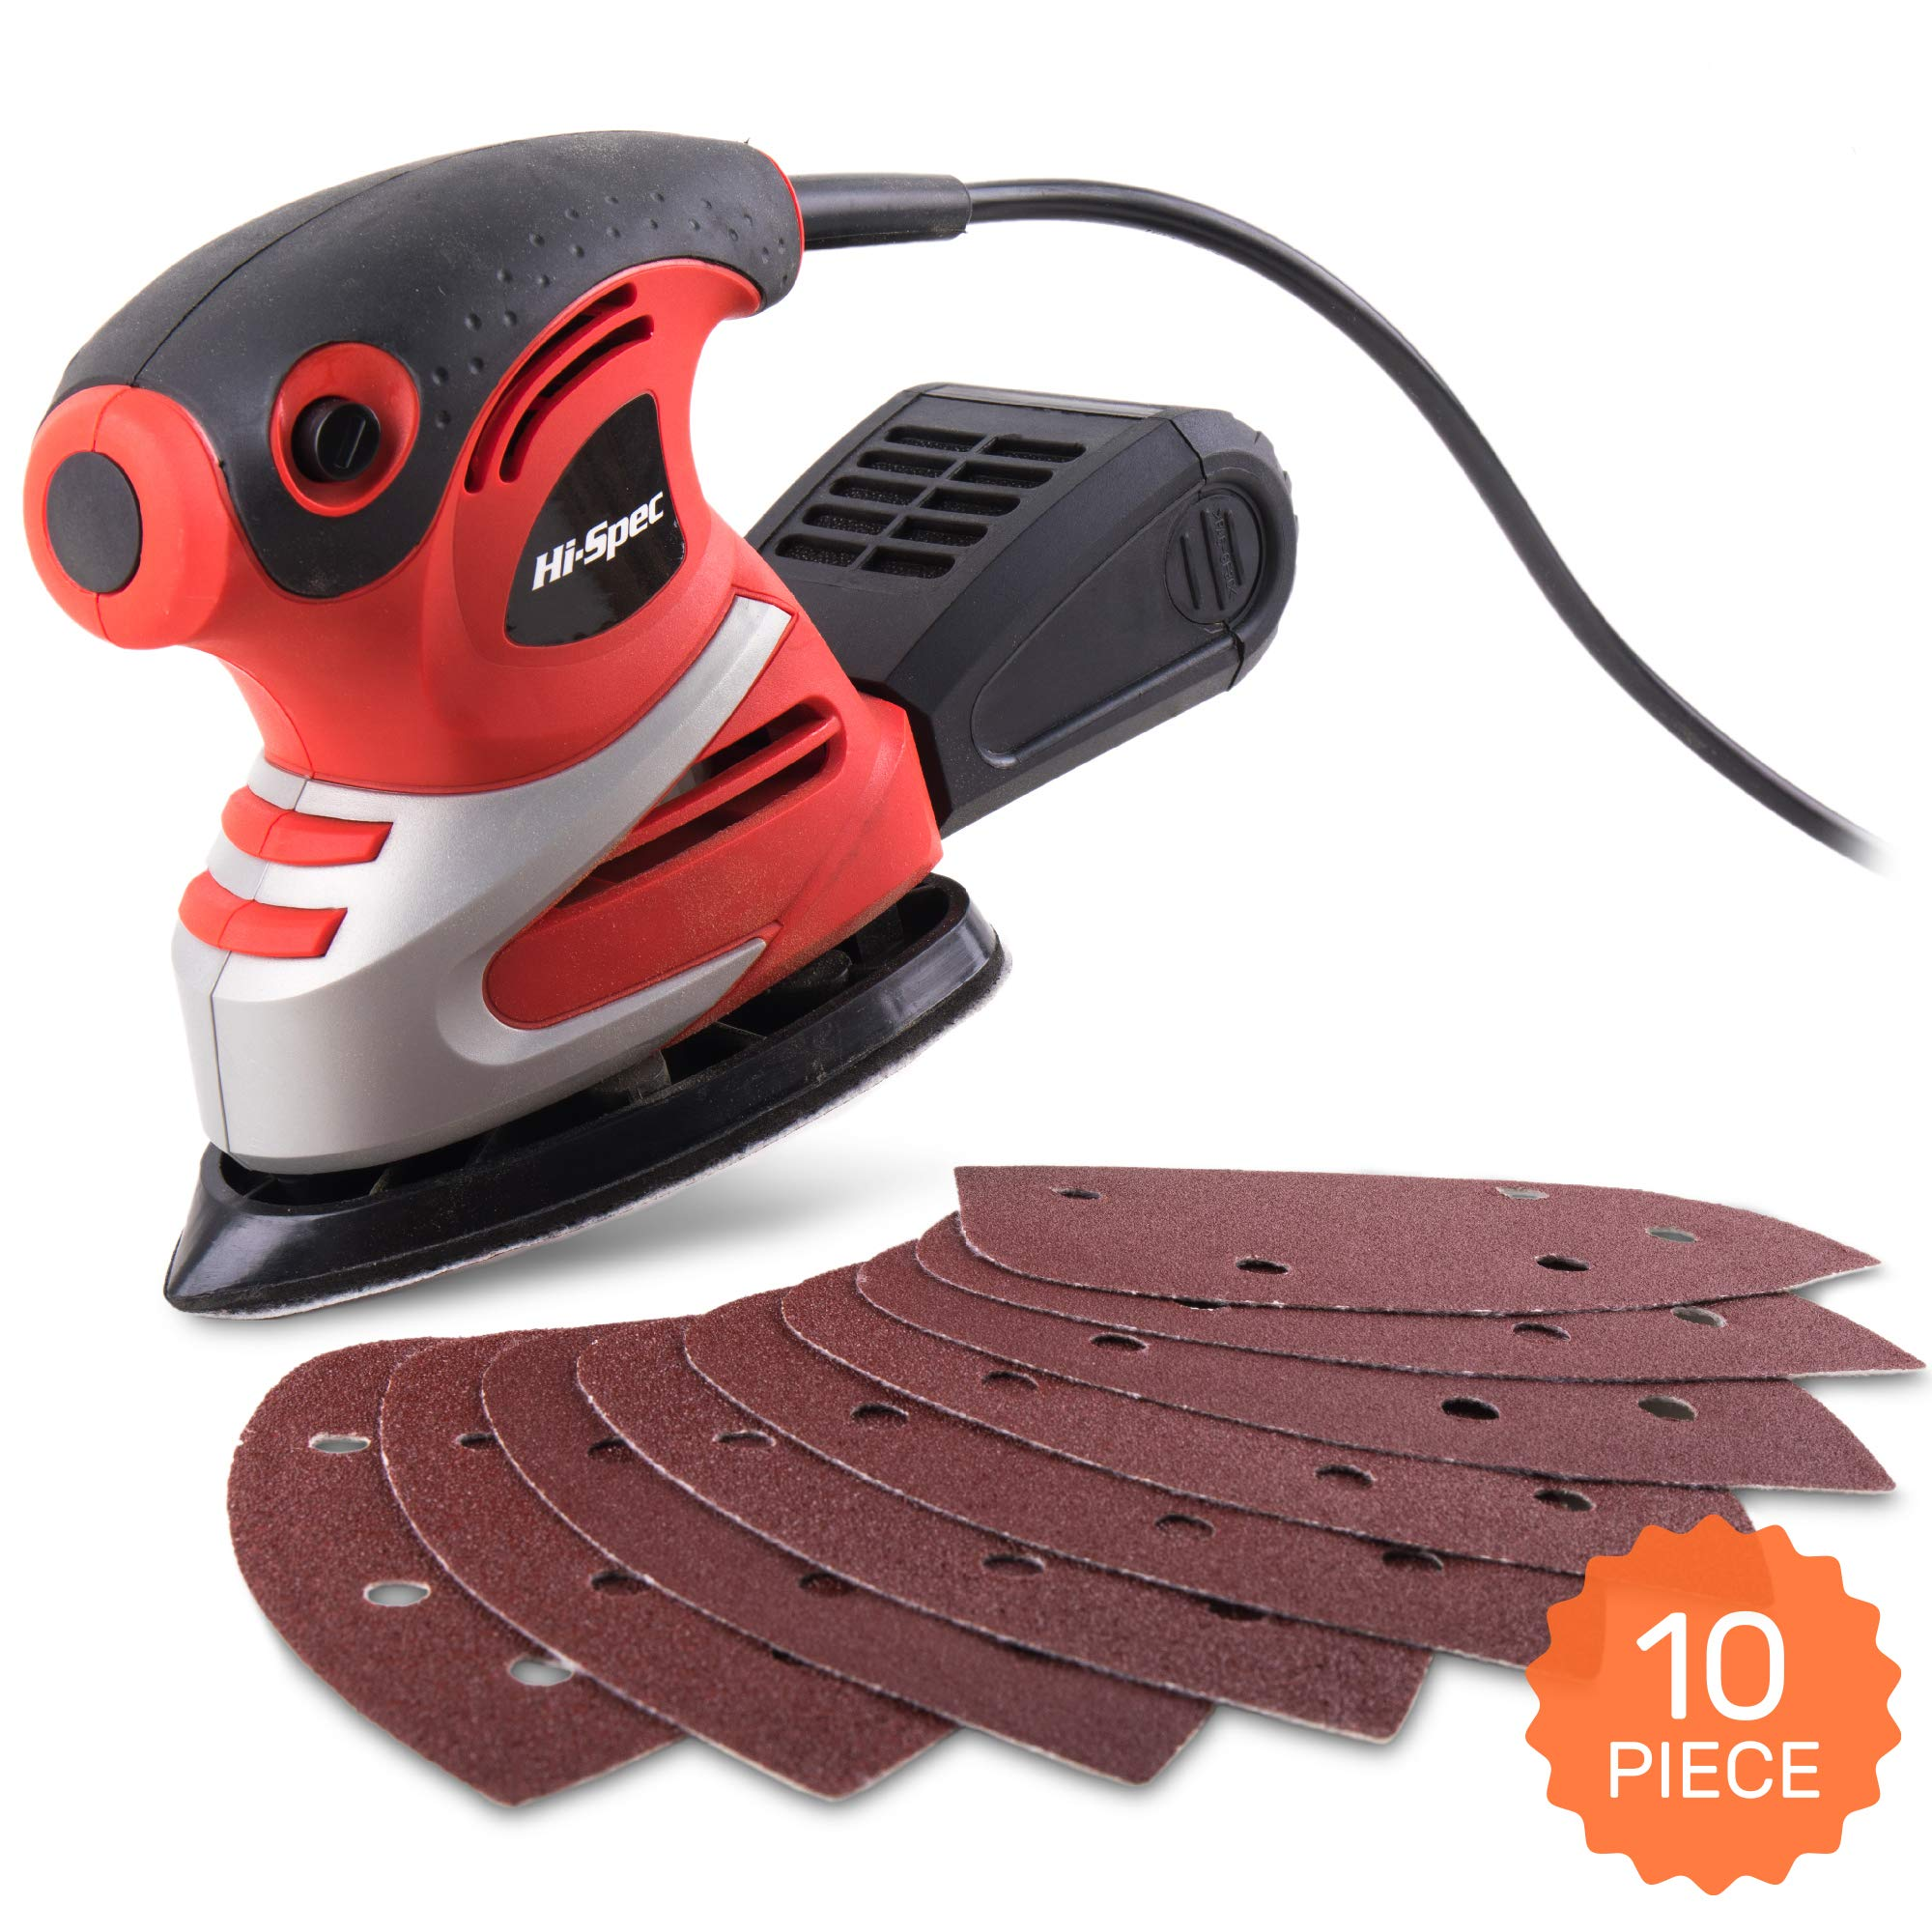 Hi-Spec 200W Palm Detail Orbital Mouse Sander with Dust Collector & 10pc Sanding Pad Kit for Removing Paint, Varnish, Stains, Preparing Furniture, Polishing, Smoothing Out & Sanding Down Wood by Hi-Spec